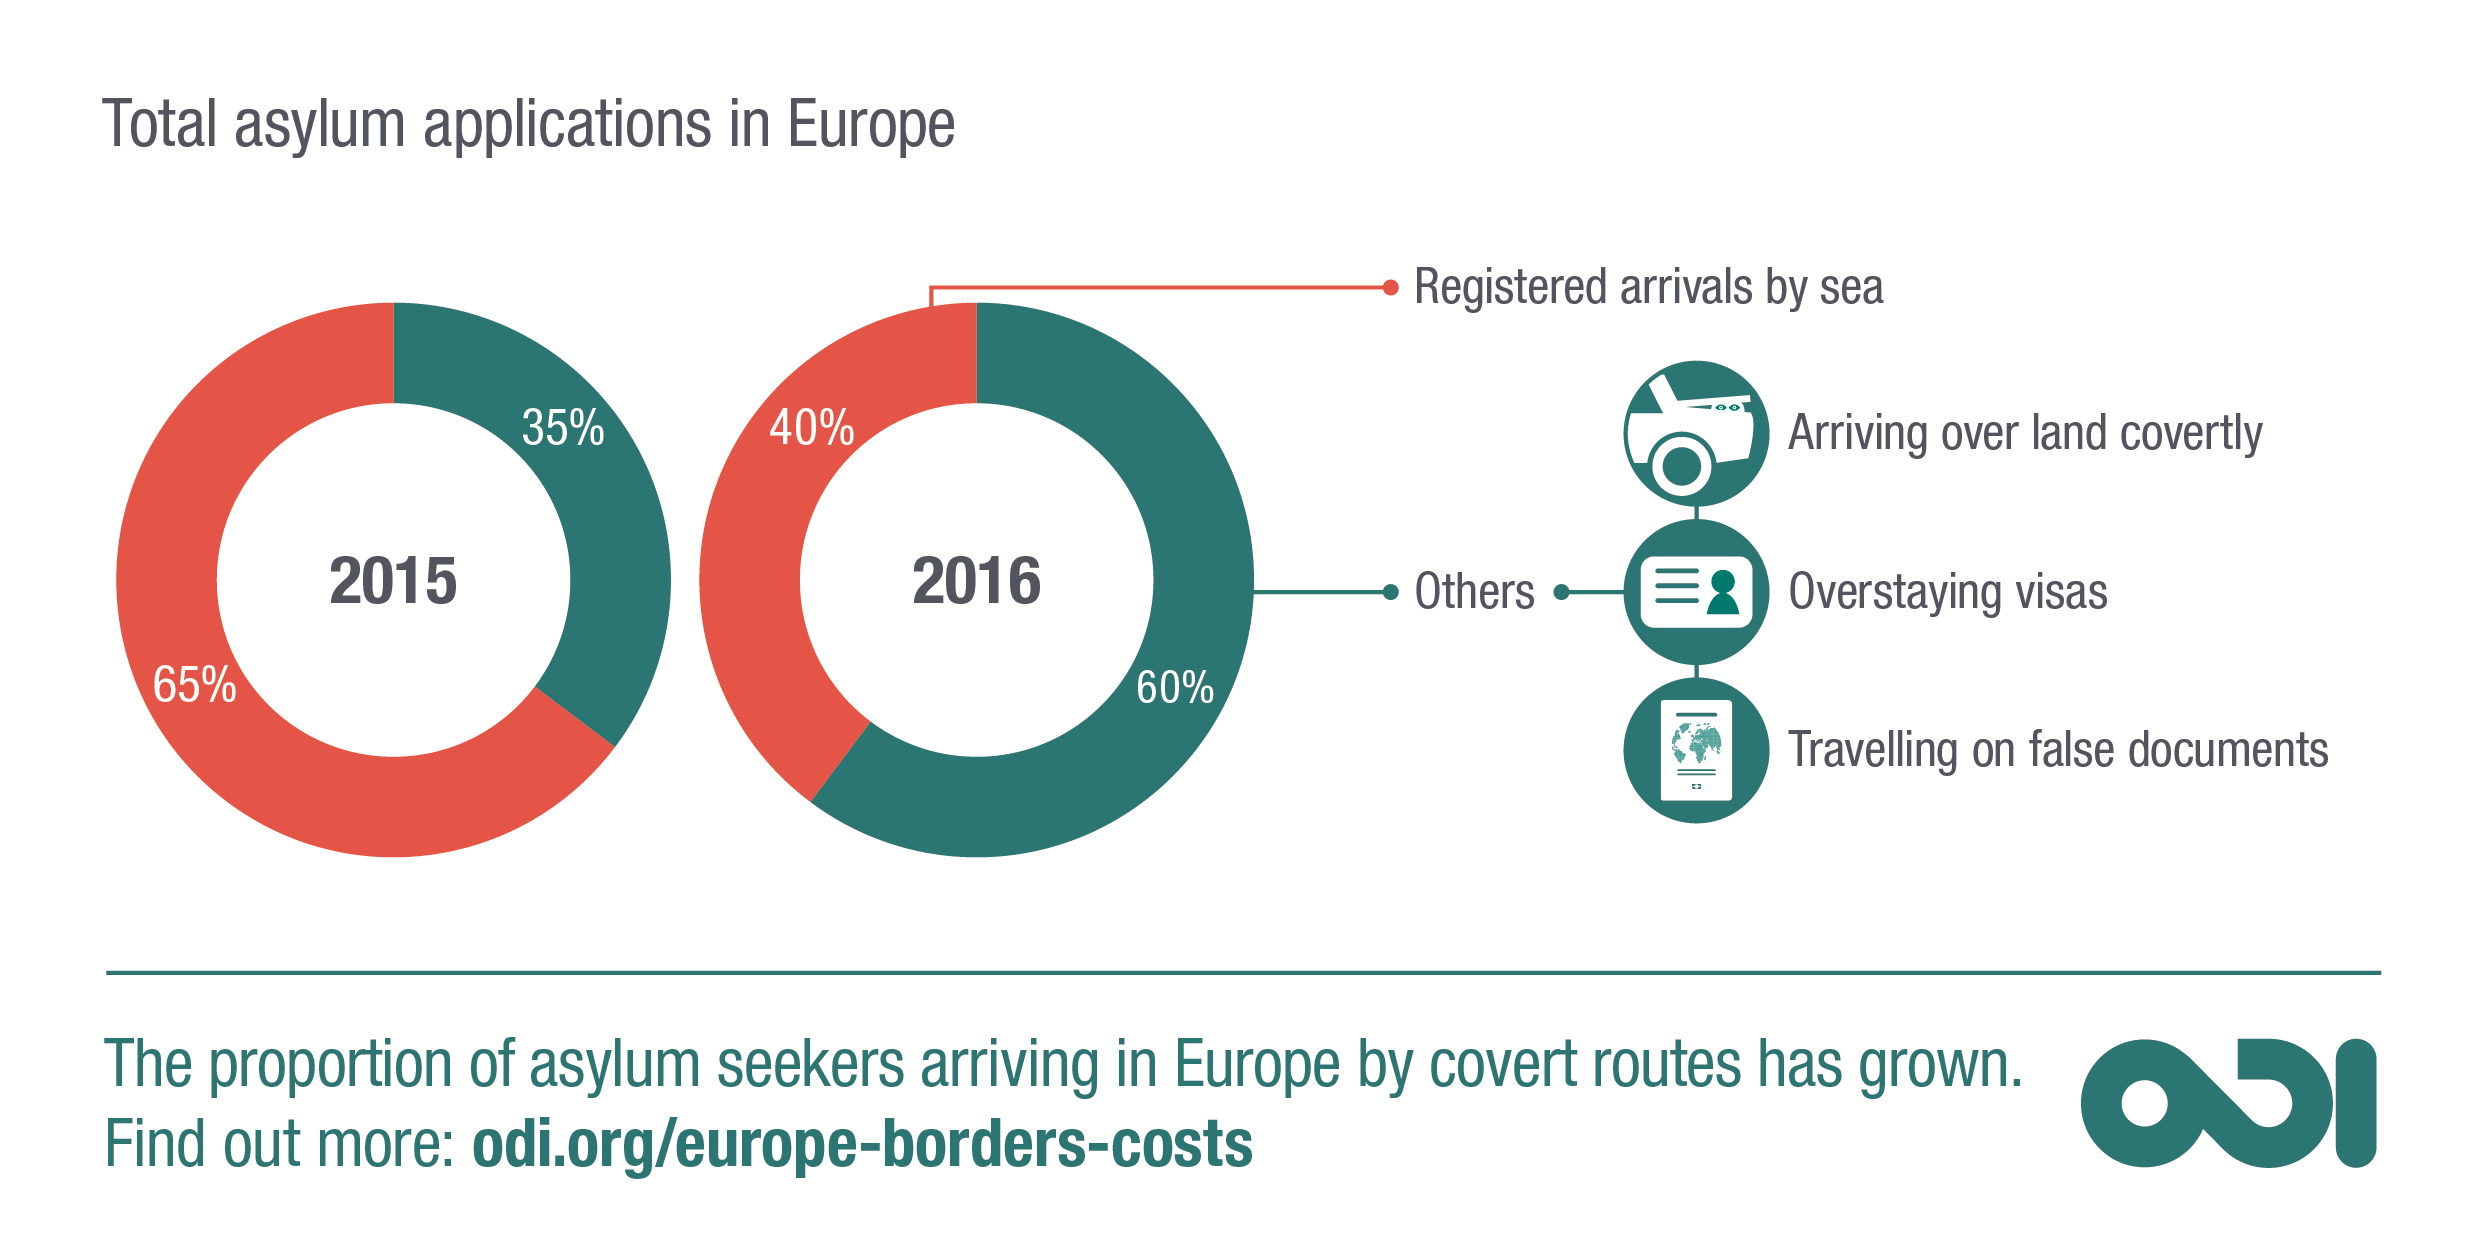 Proportion of asylum seekers arriving in Europe by covert routes has grown.